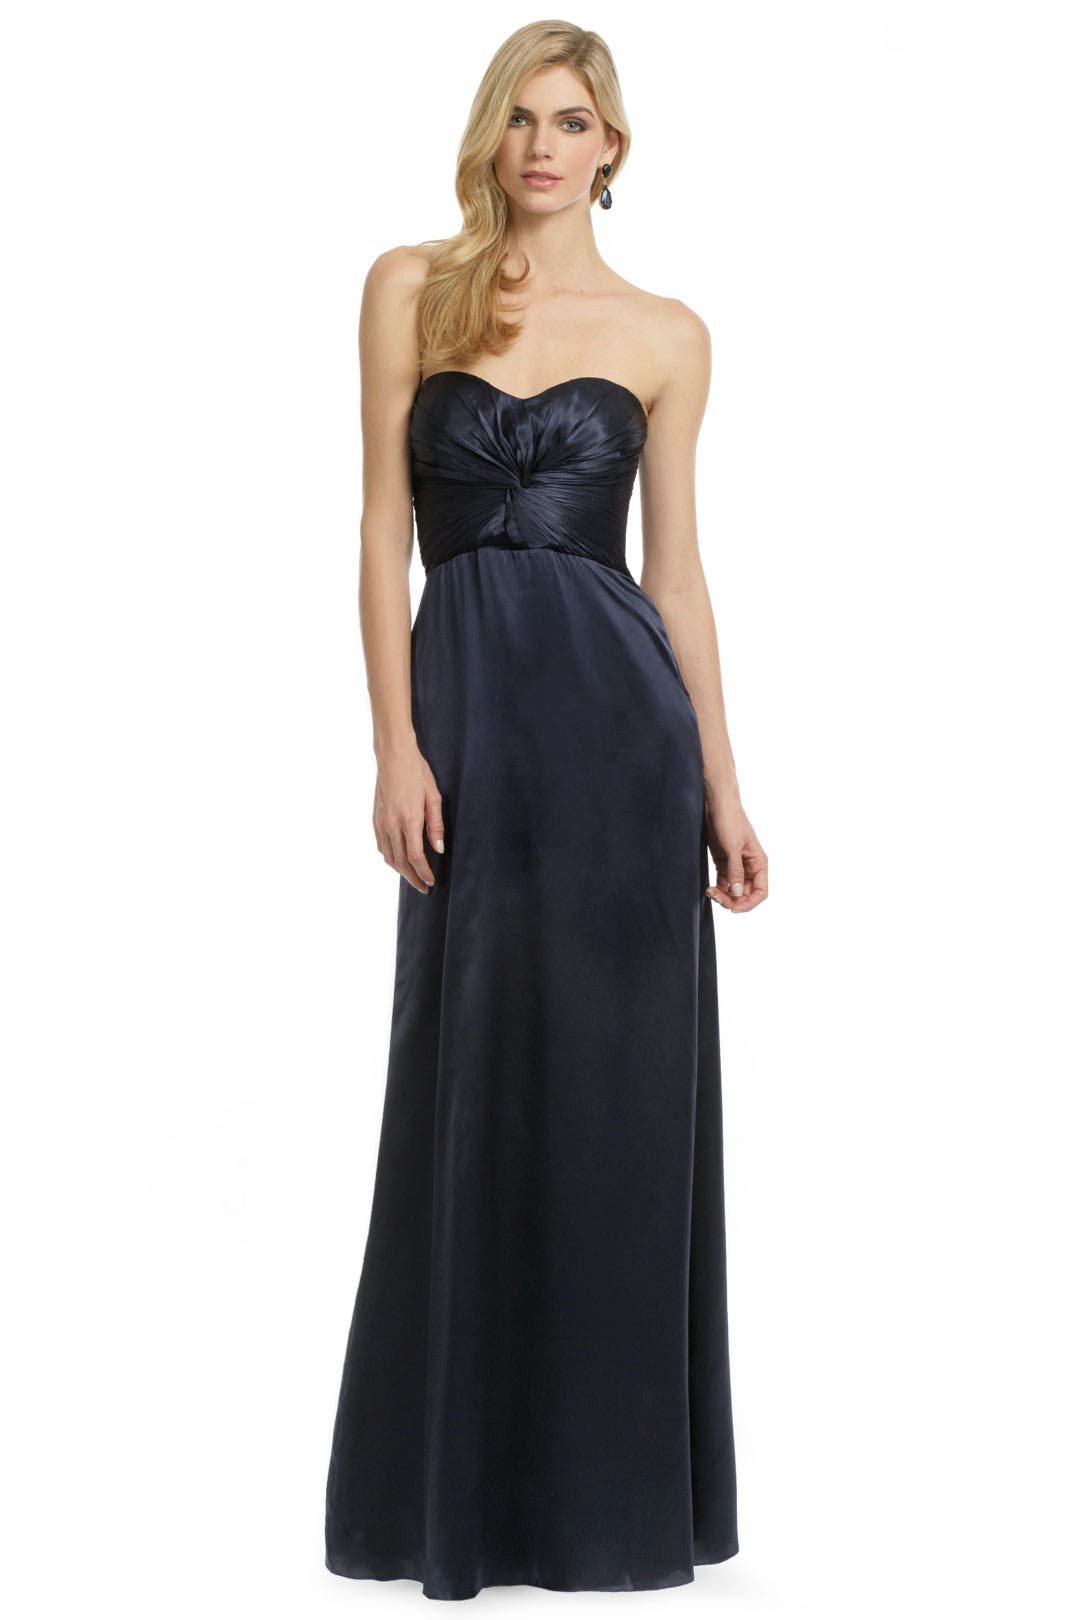 After Hours Gown by Carlos Miele